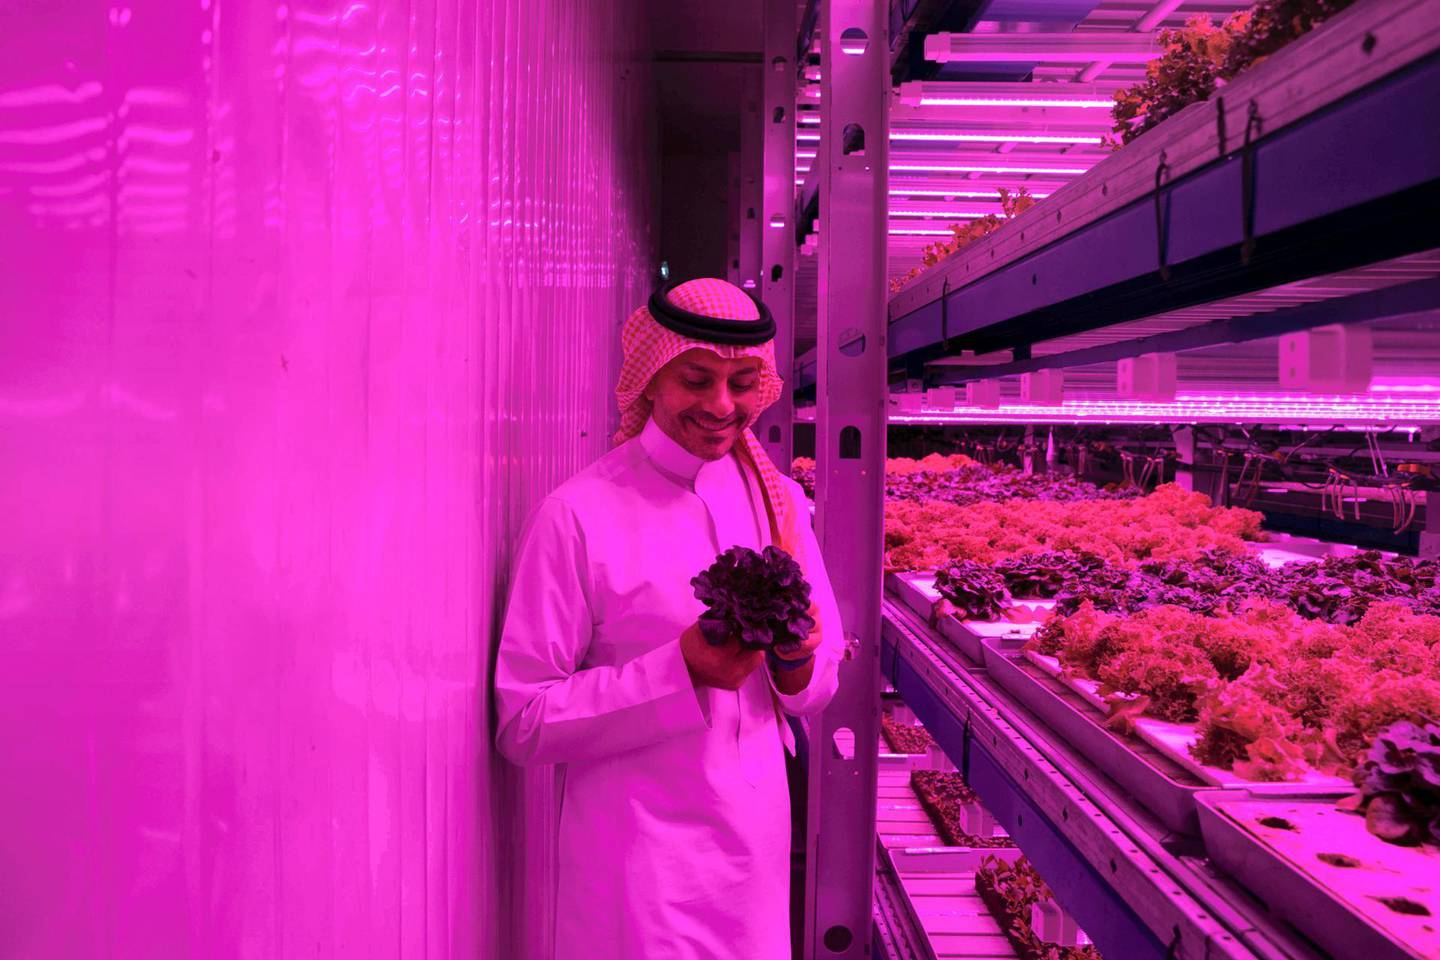 DUBAI, UNITED ARAB EMIRATES - JULY 25, 2018. Badia Farms, established by entrepreneur Omar Al Jundi and British agricultural expert Grahame Dunling, aims to provide a substitute for importing fruits and vegetables into the region from countries thousands of miles away.(Photo by Reem Mohammed/The National)Reporter: Section: BZ